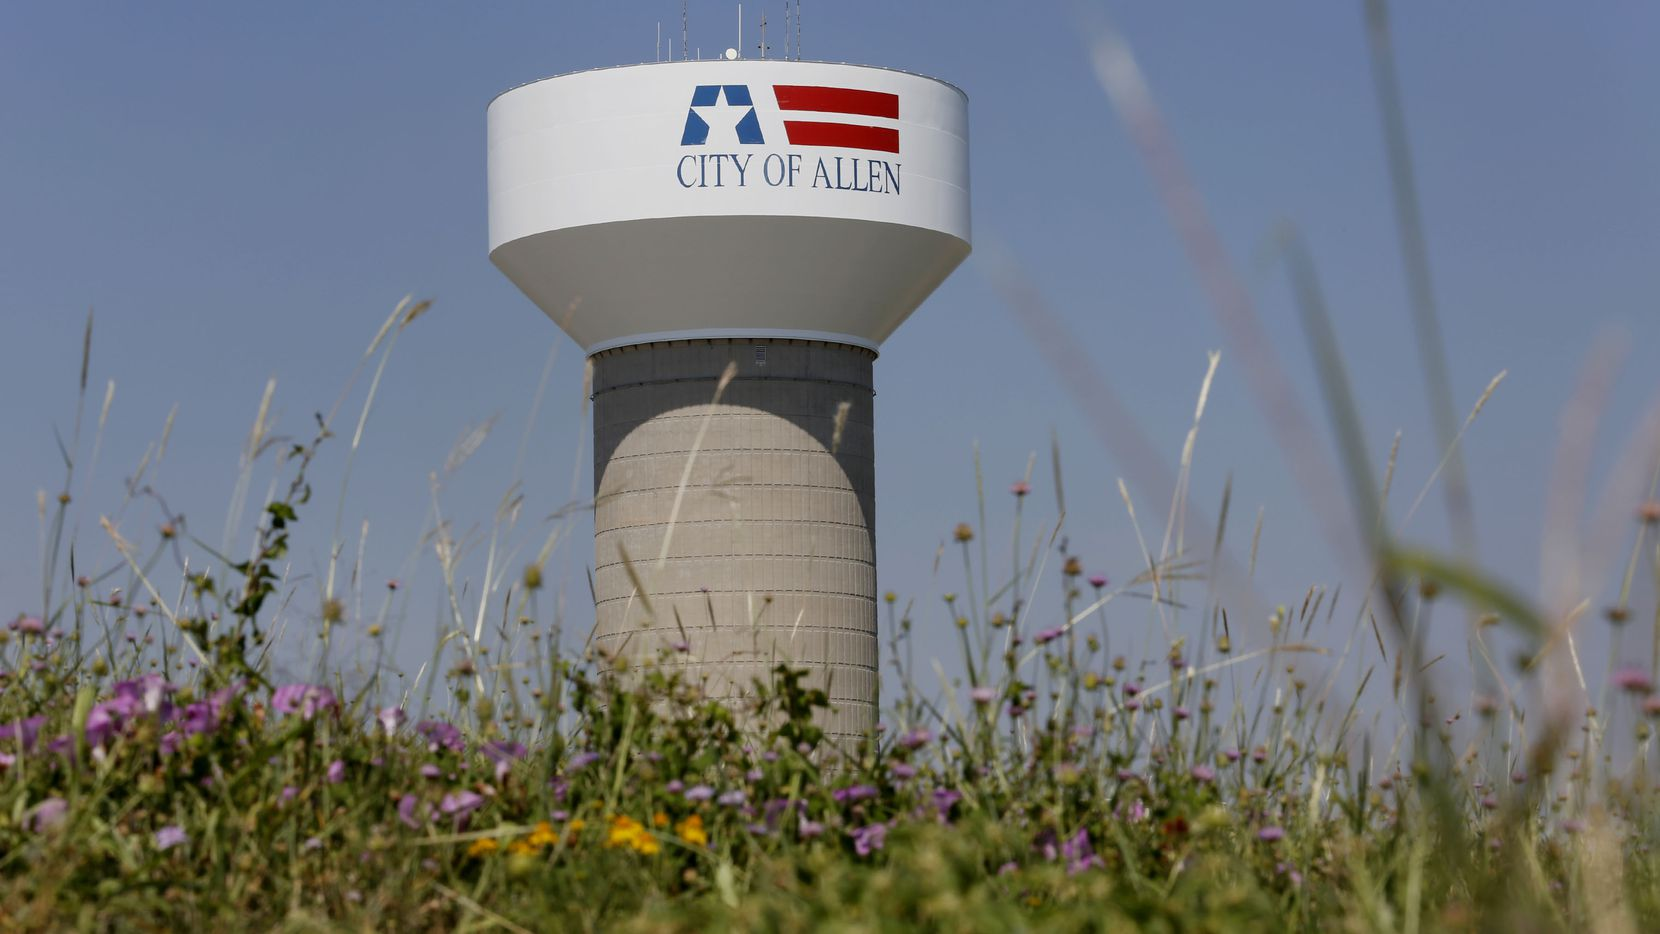 A City of Allen water tower near Prestige Circle and Bethany Drive in Allen, Texas Thursday August 14, 2014.